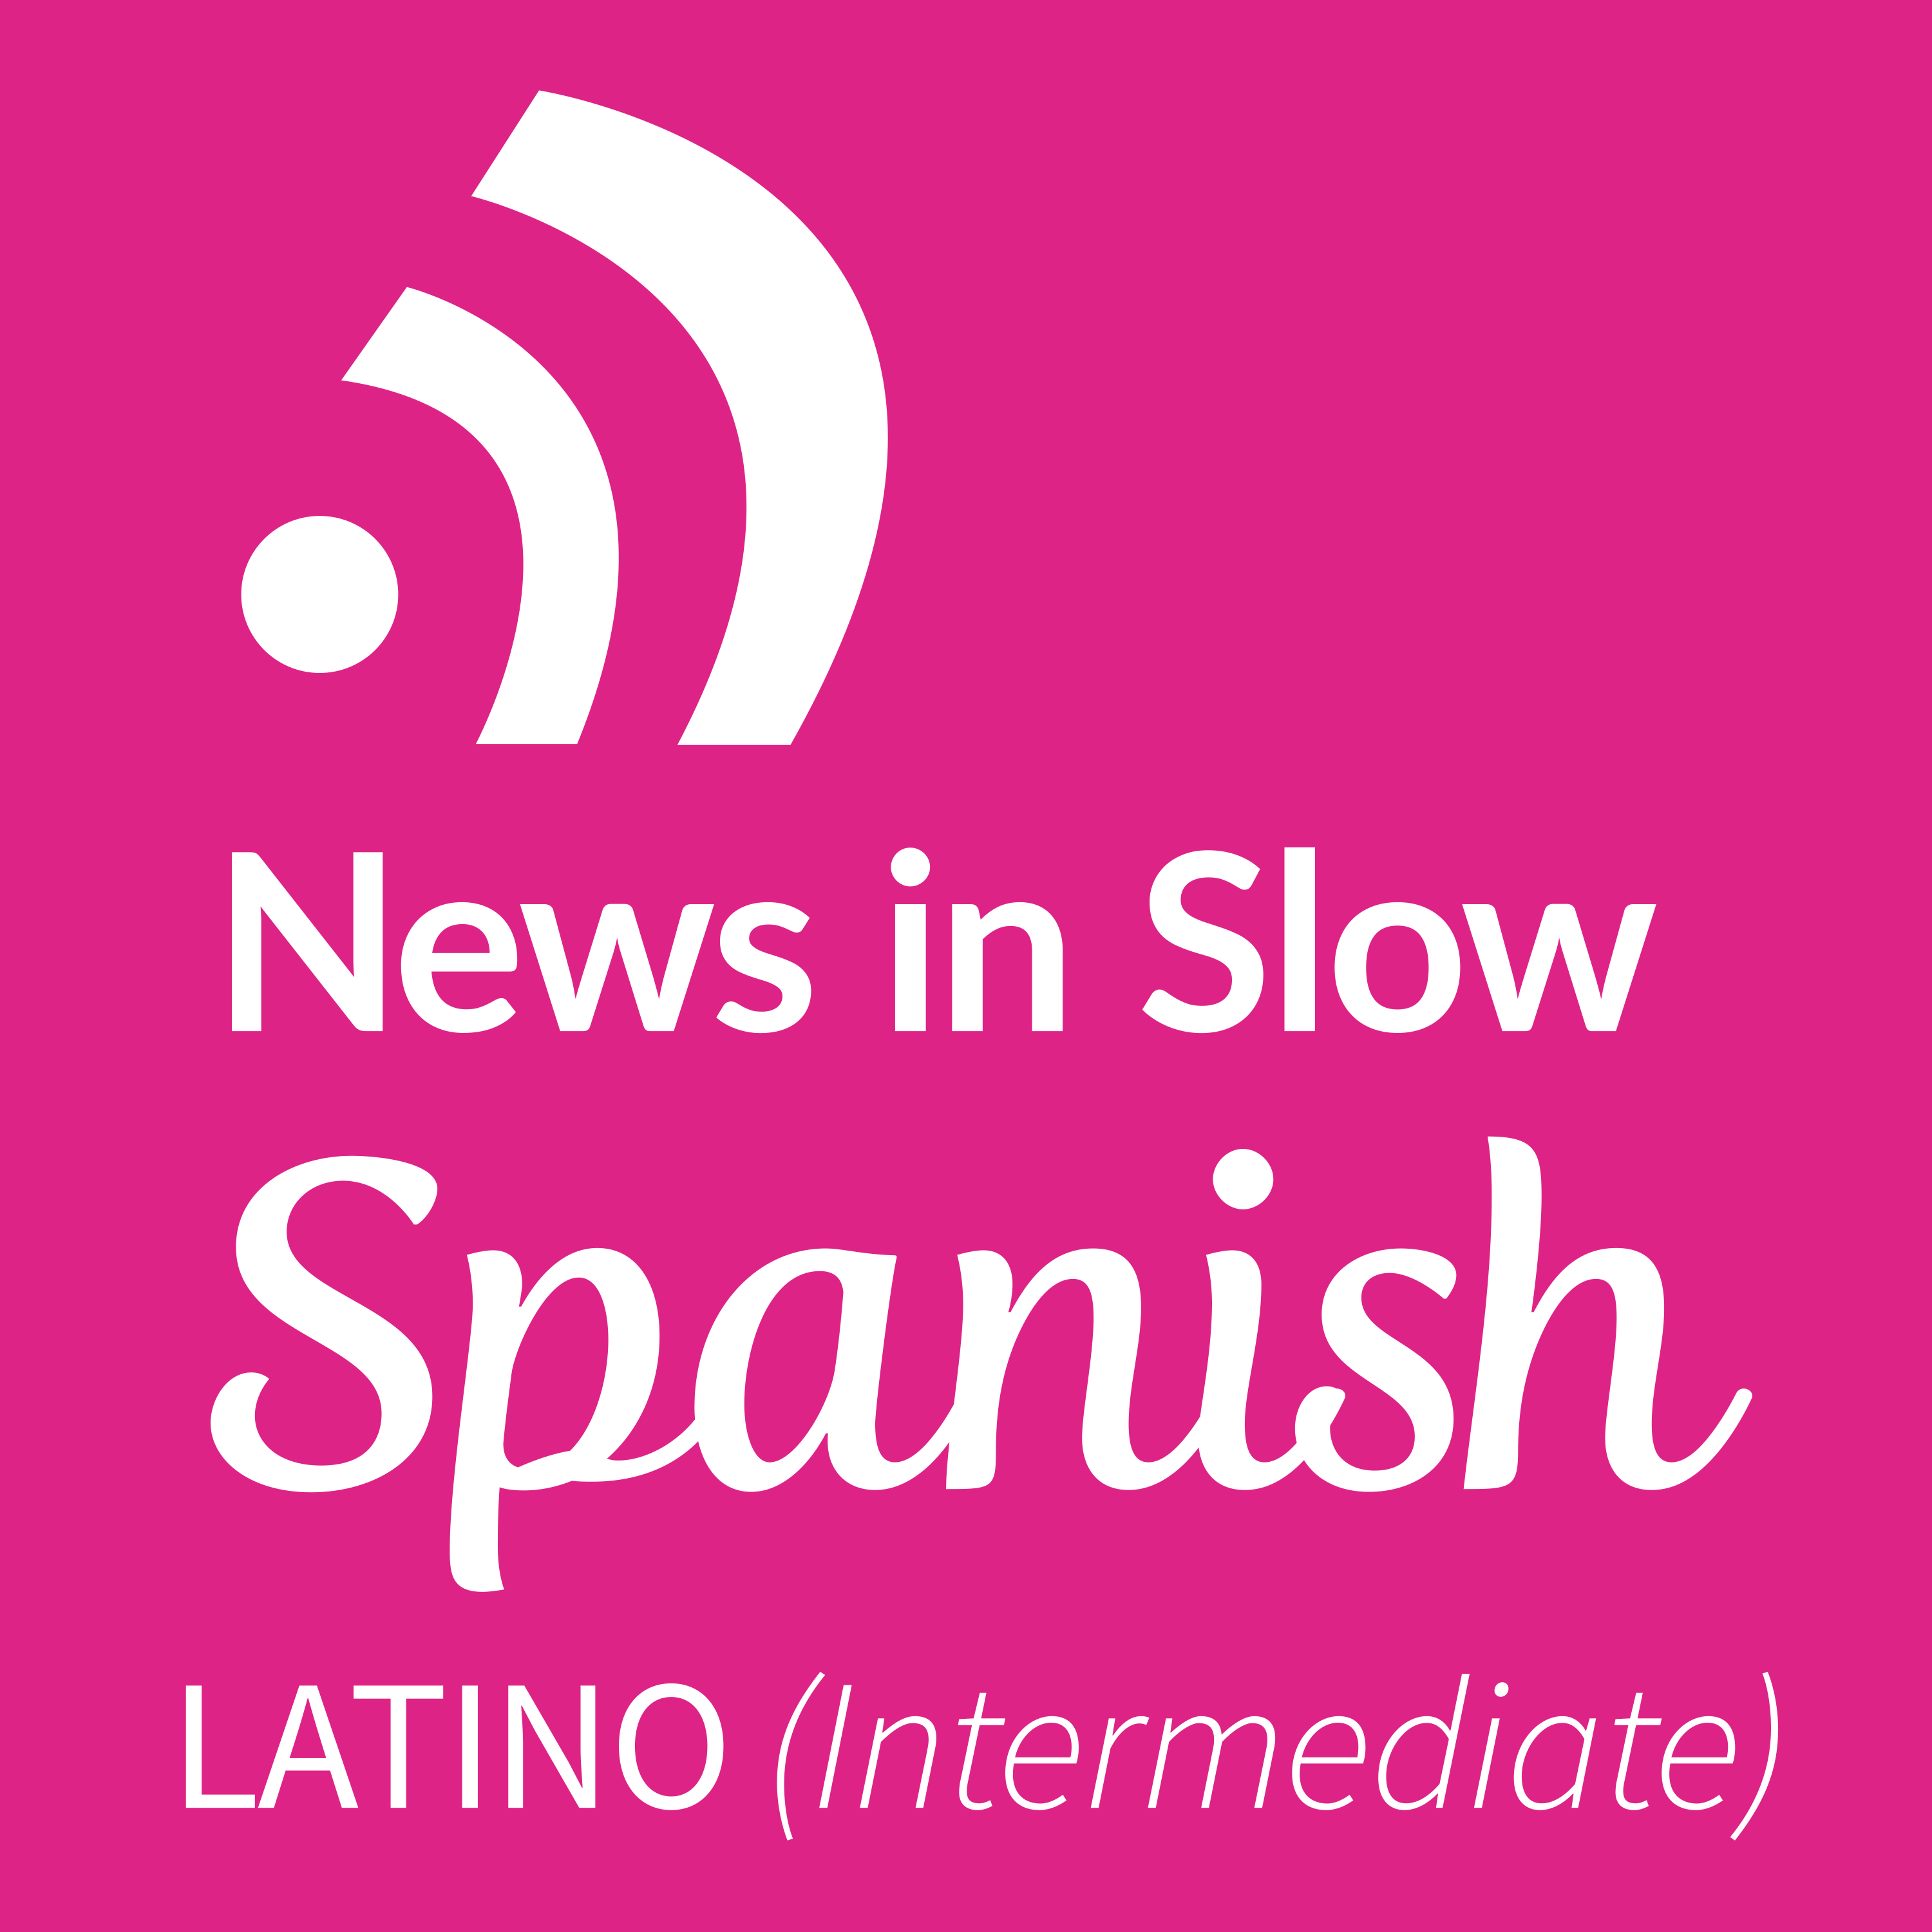 News in Slow Spanish Latino - # 138 - Spanish grammar, news and expressions